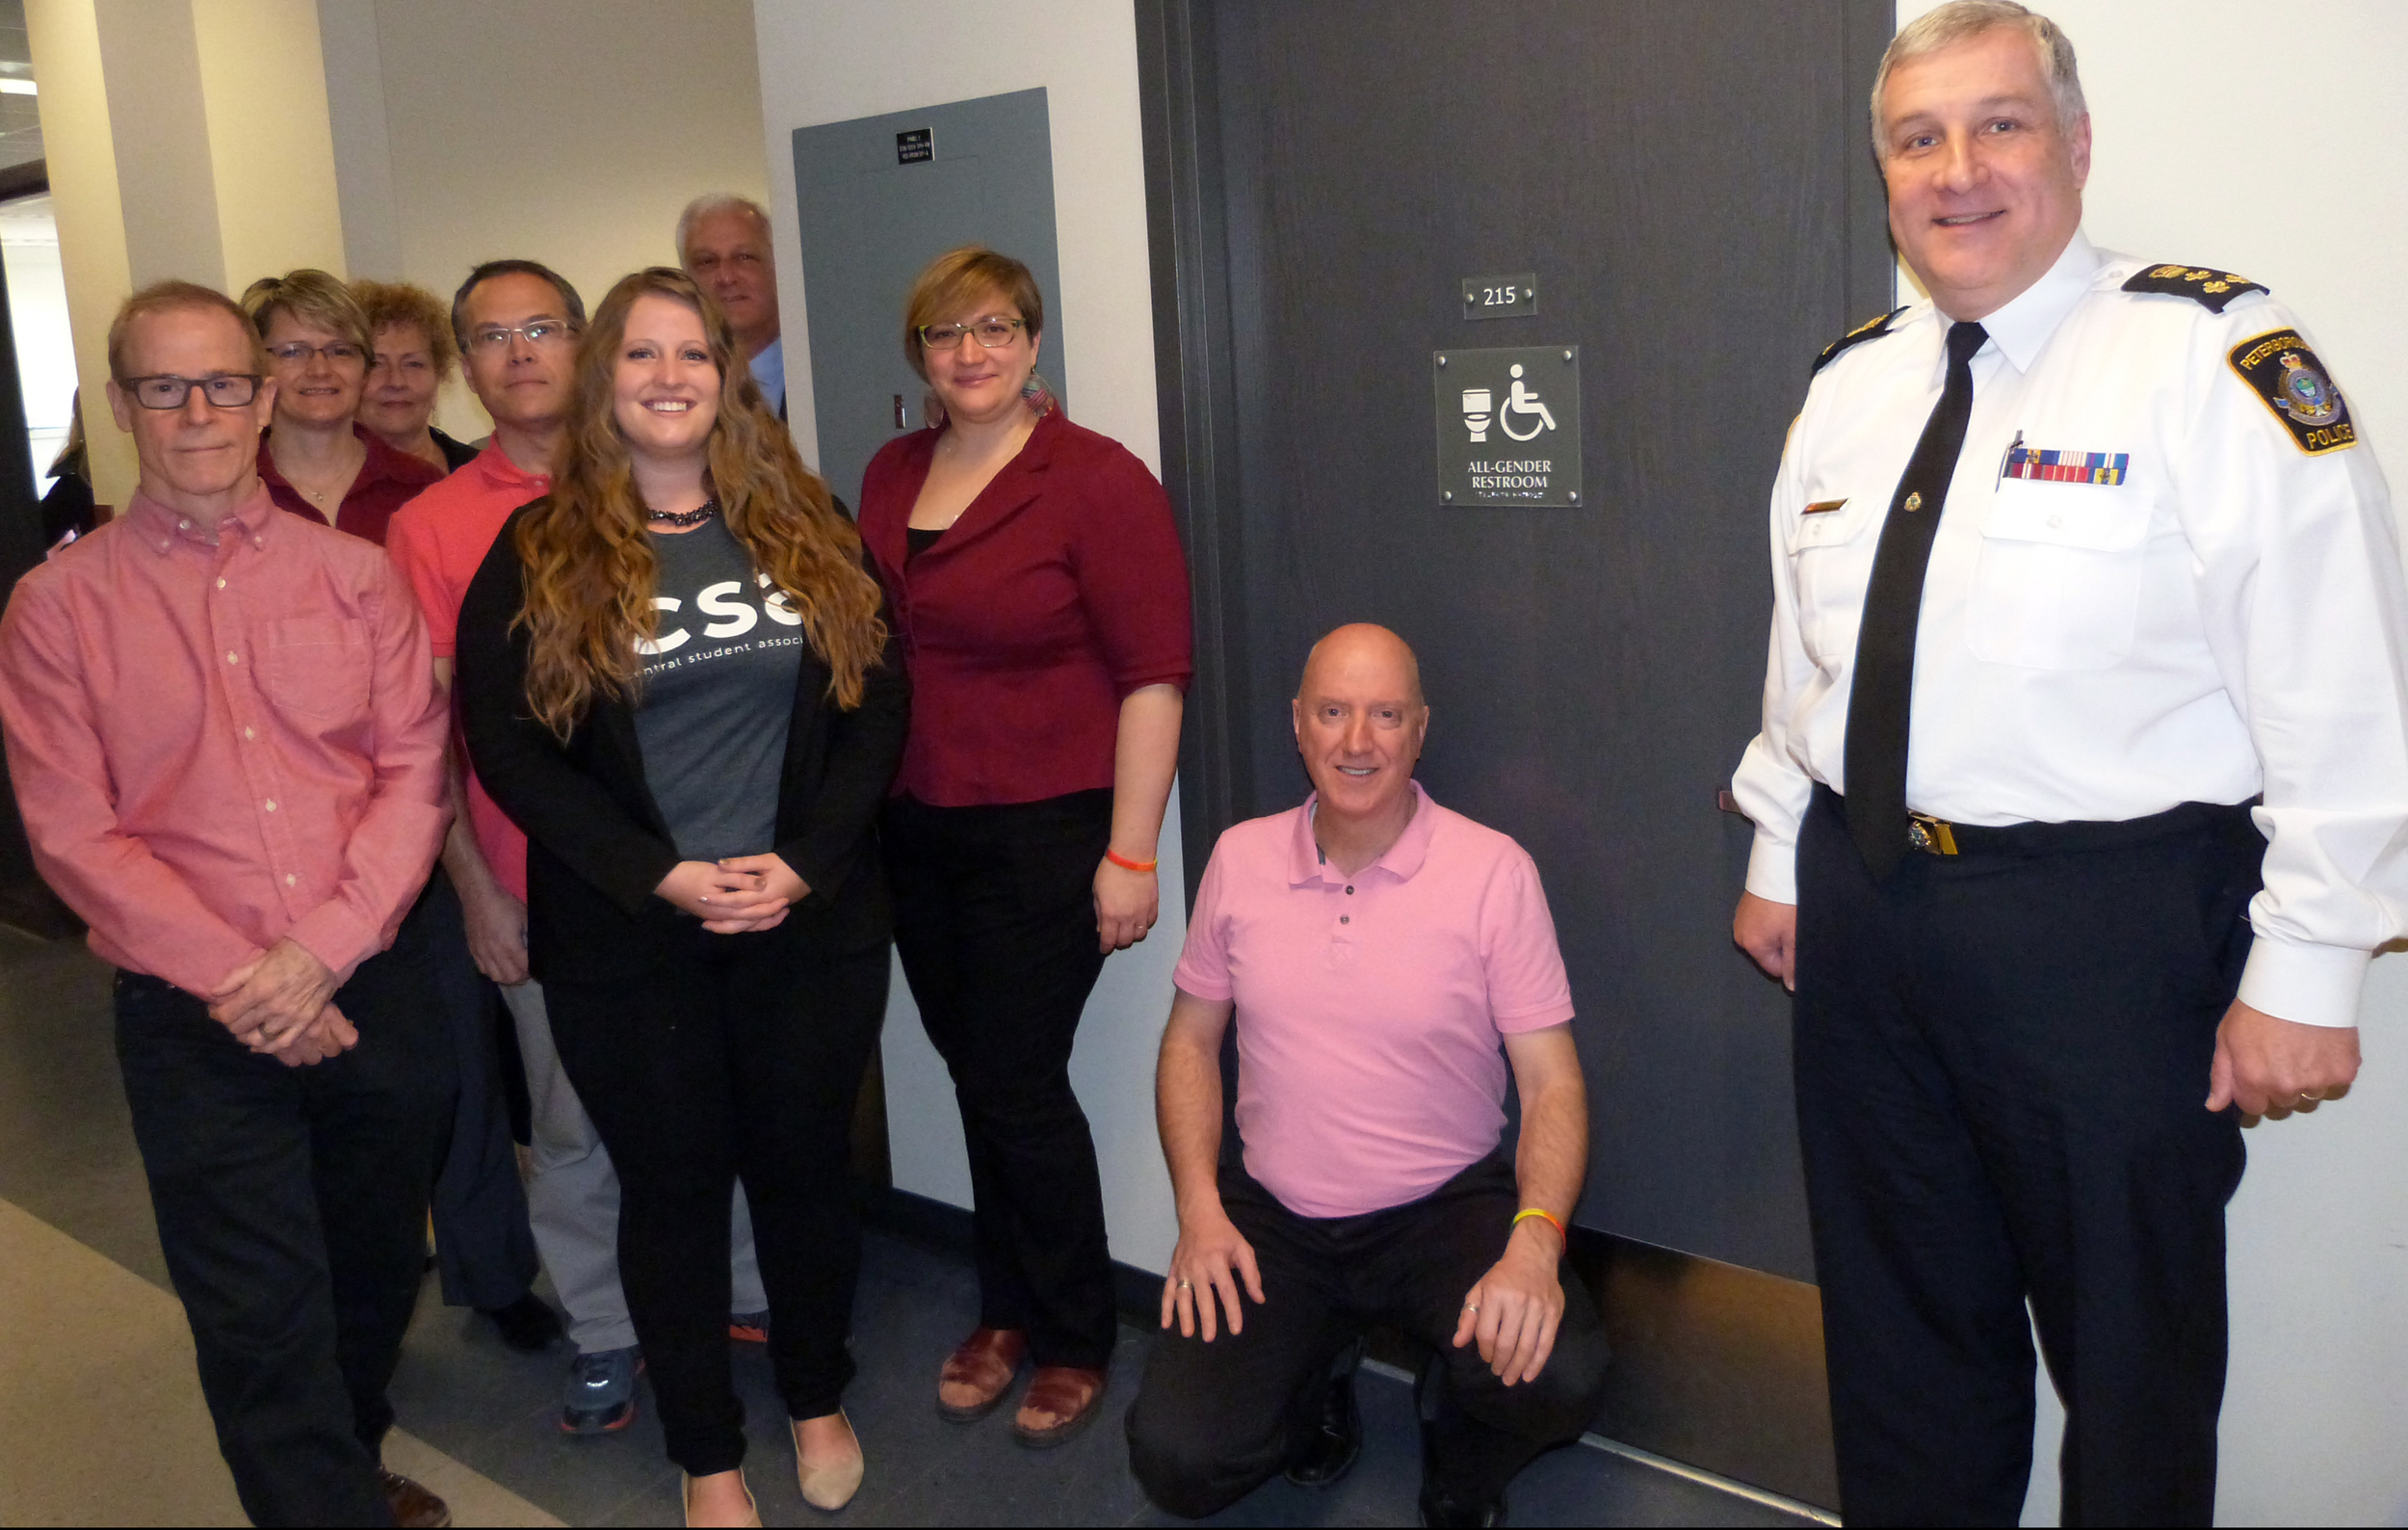 Chief Murray Rodd pictured with Police community partners